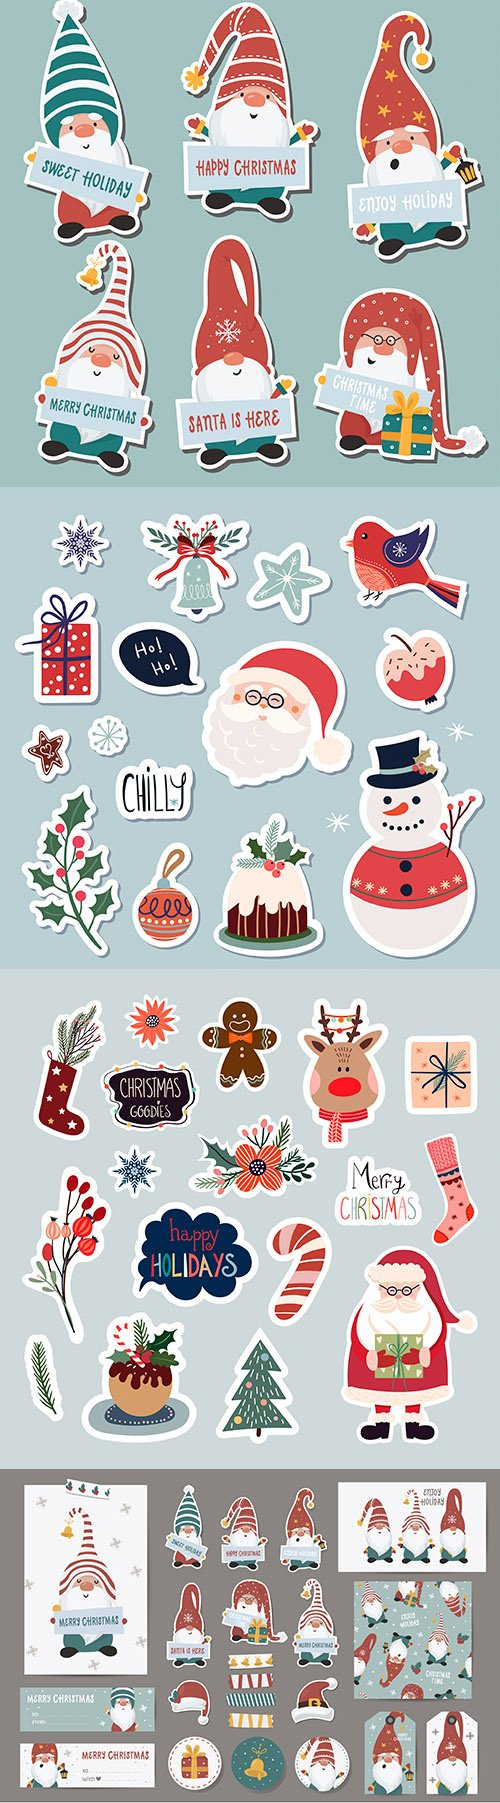 Cute Santa Claus collection of Christmas stickers elements